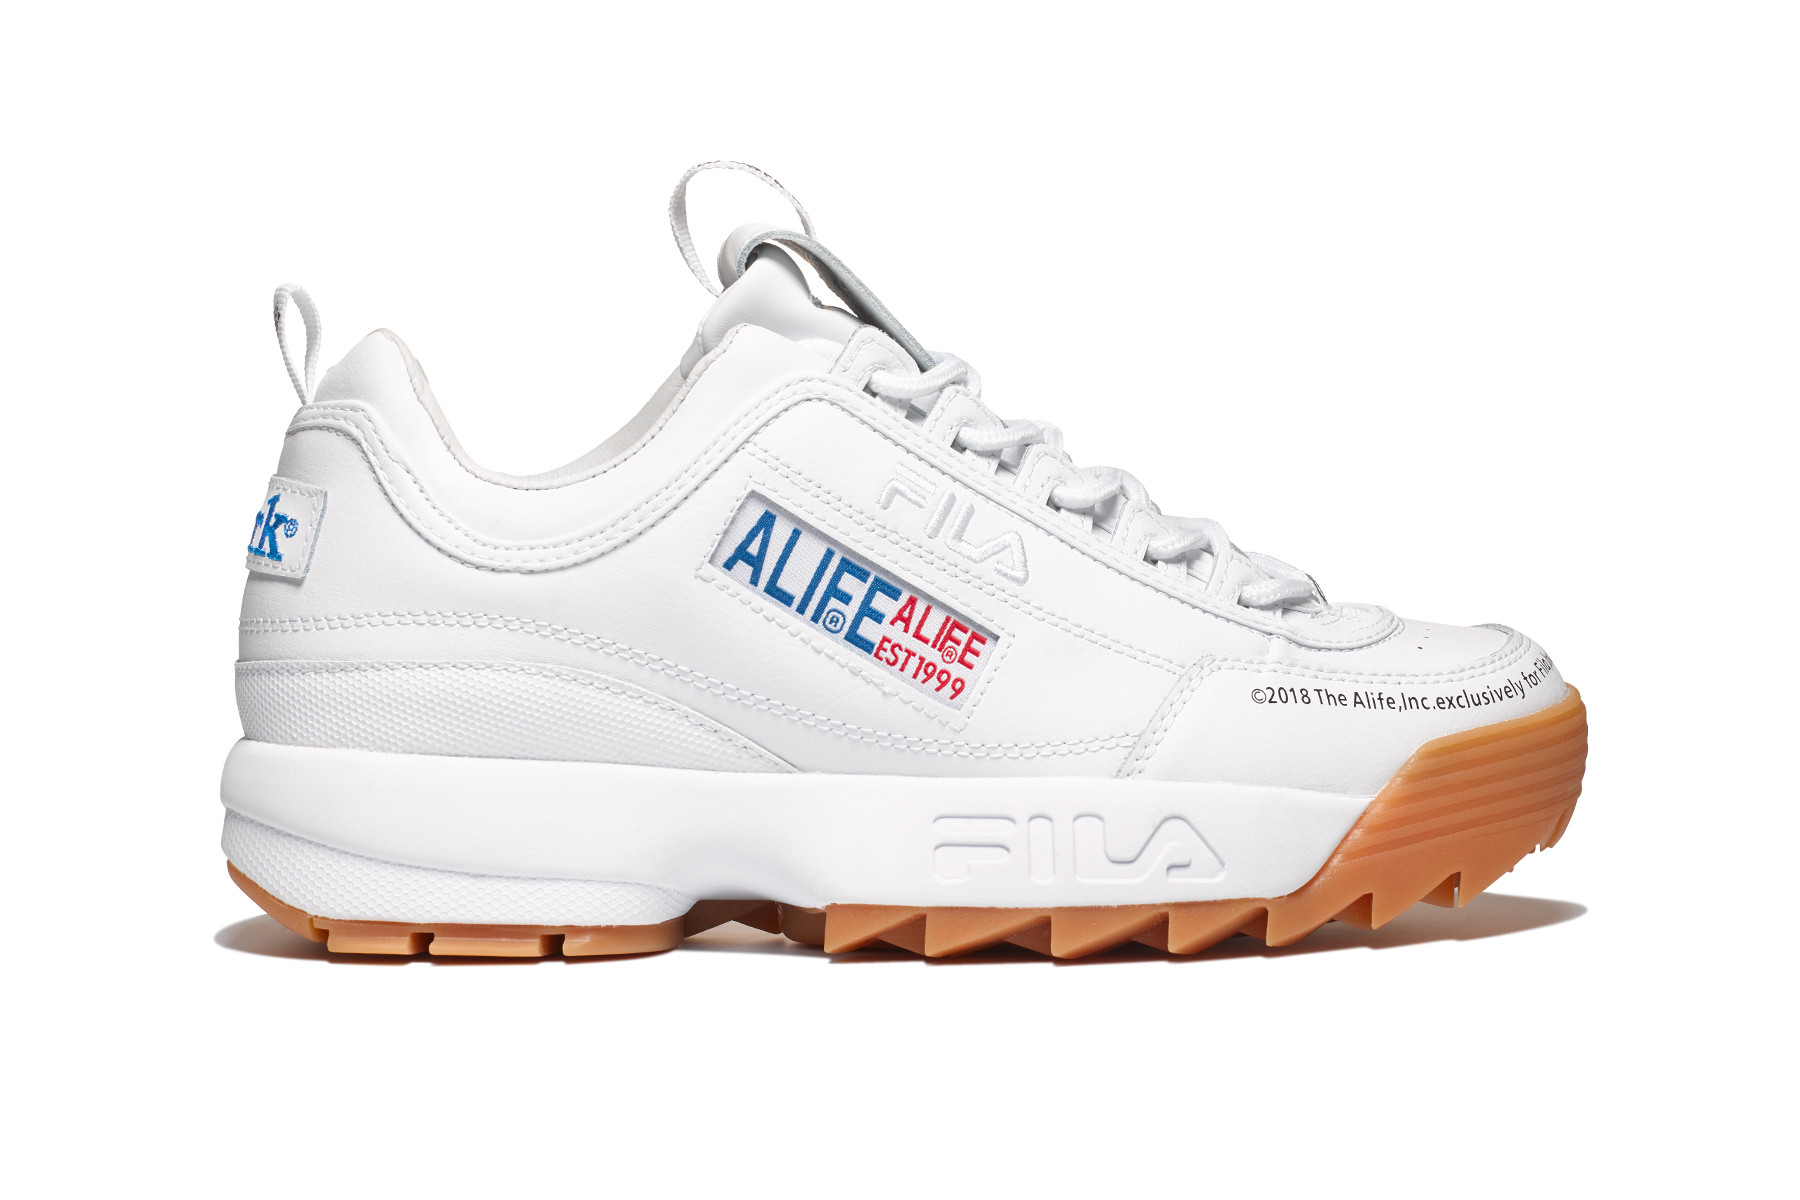 FILA Come Together on the Disruptor 2